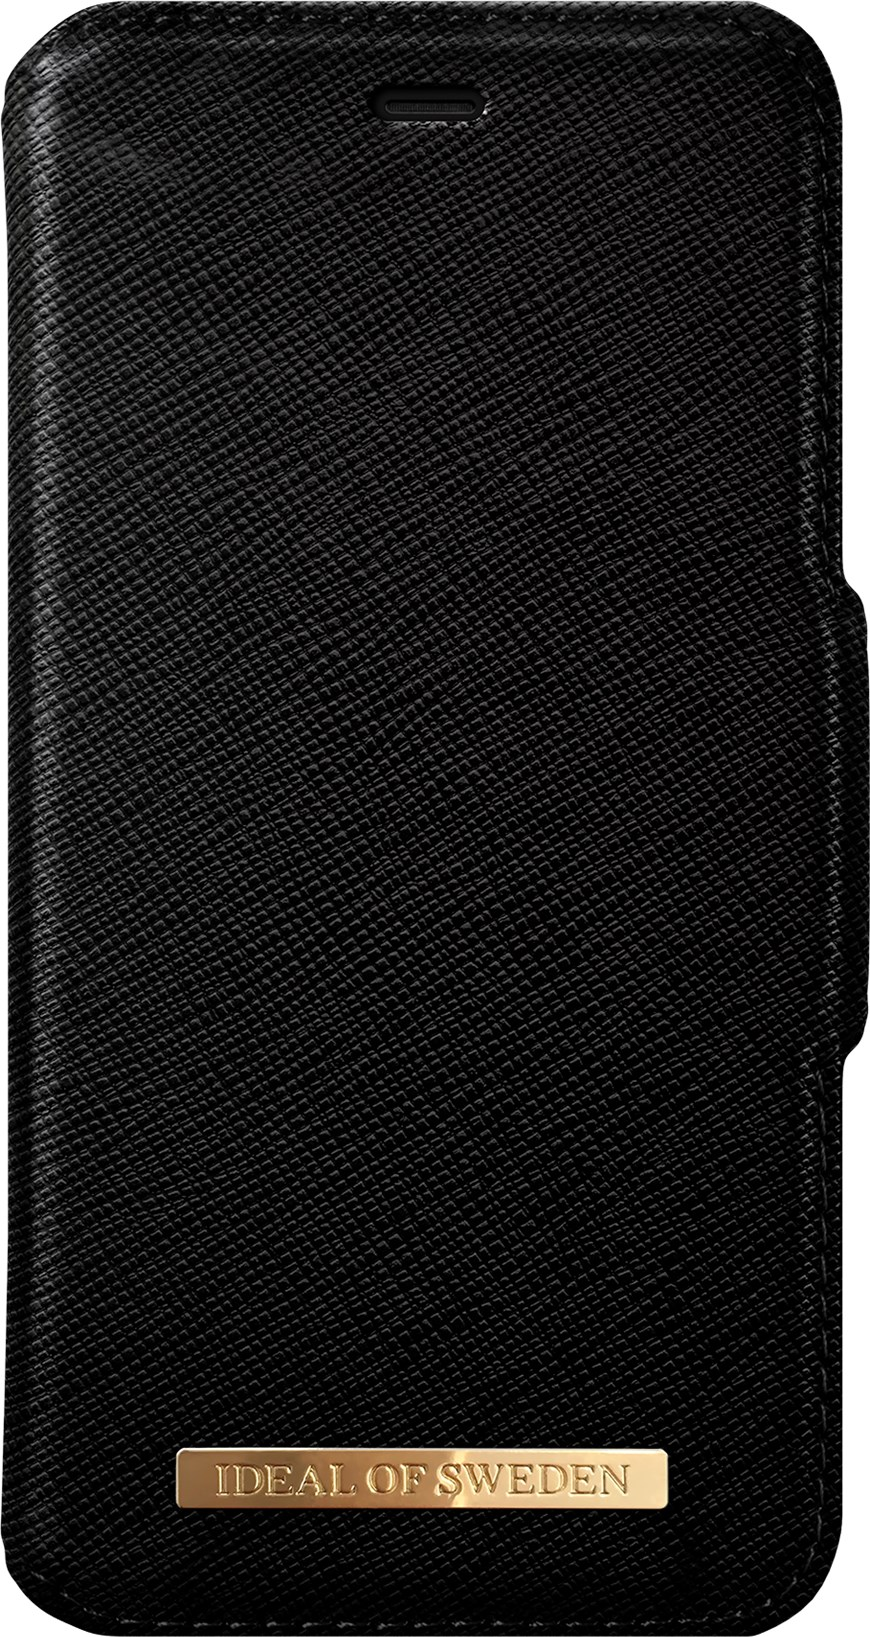 iDeal of Sweden Ideal Fashion Wallet Iphone 11 Pro Max Black